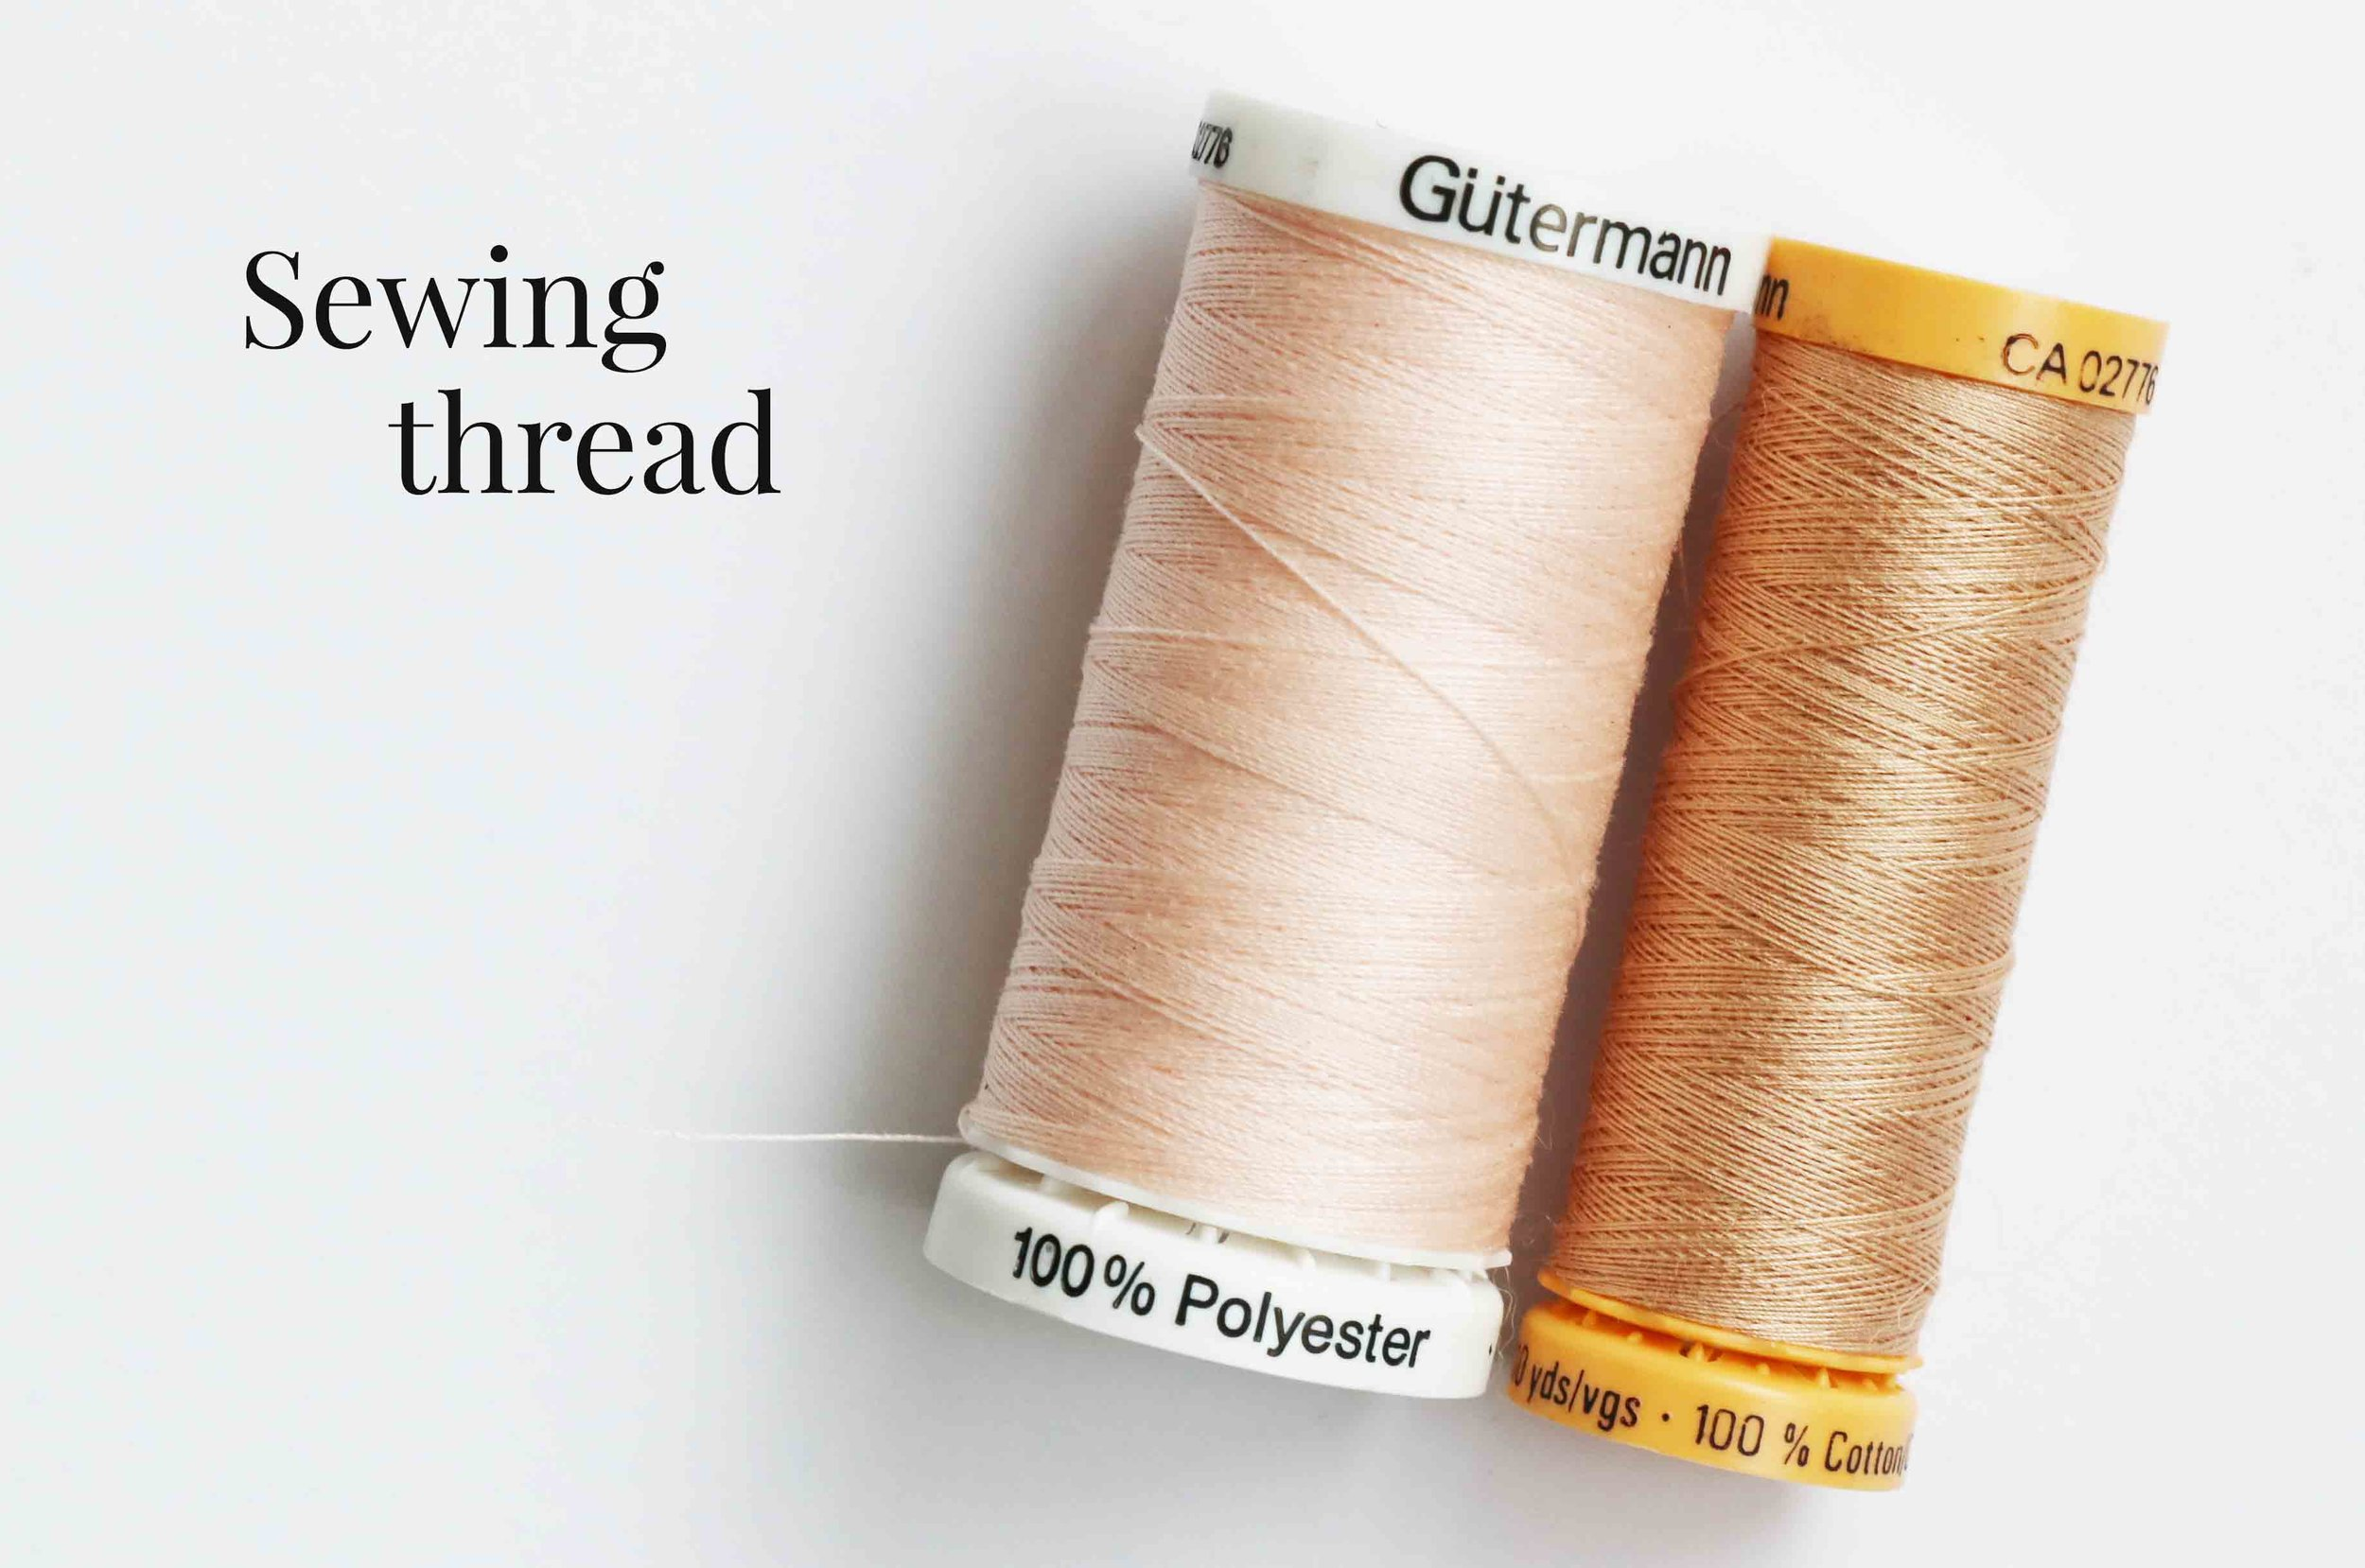 Sewing threads for sewing dolls, via Fig and me